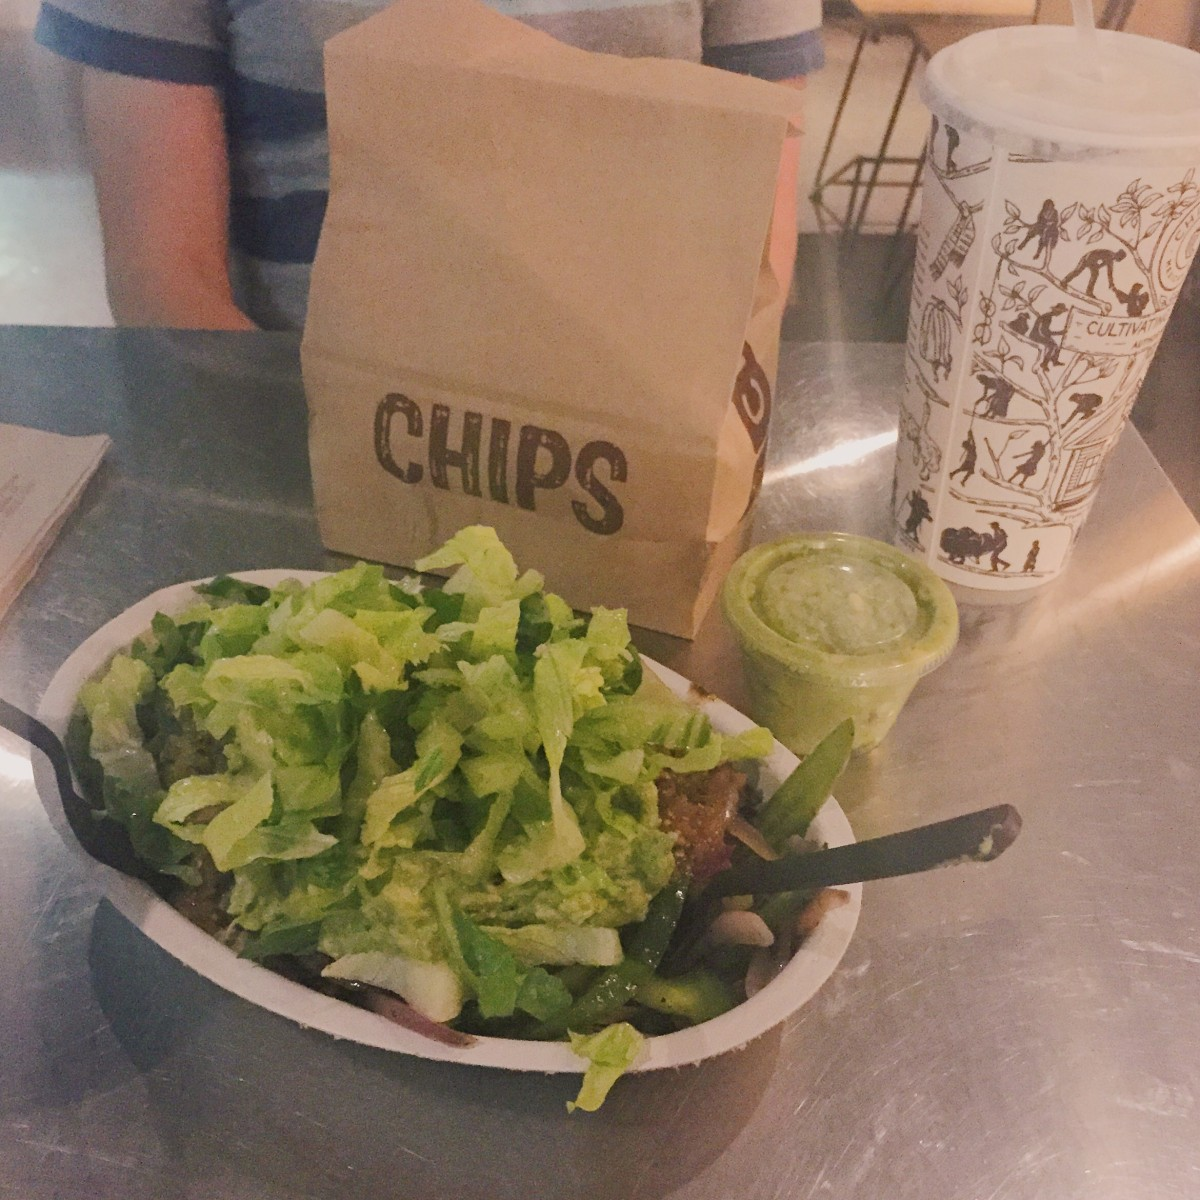 Chipotle Power and Light District Kansas City